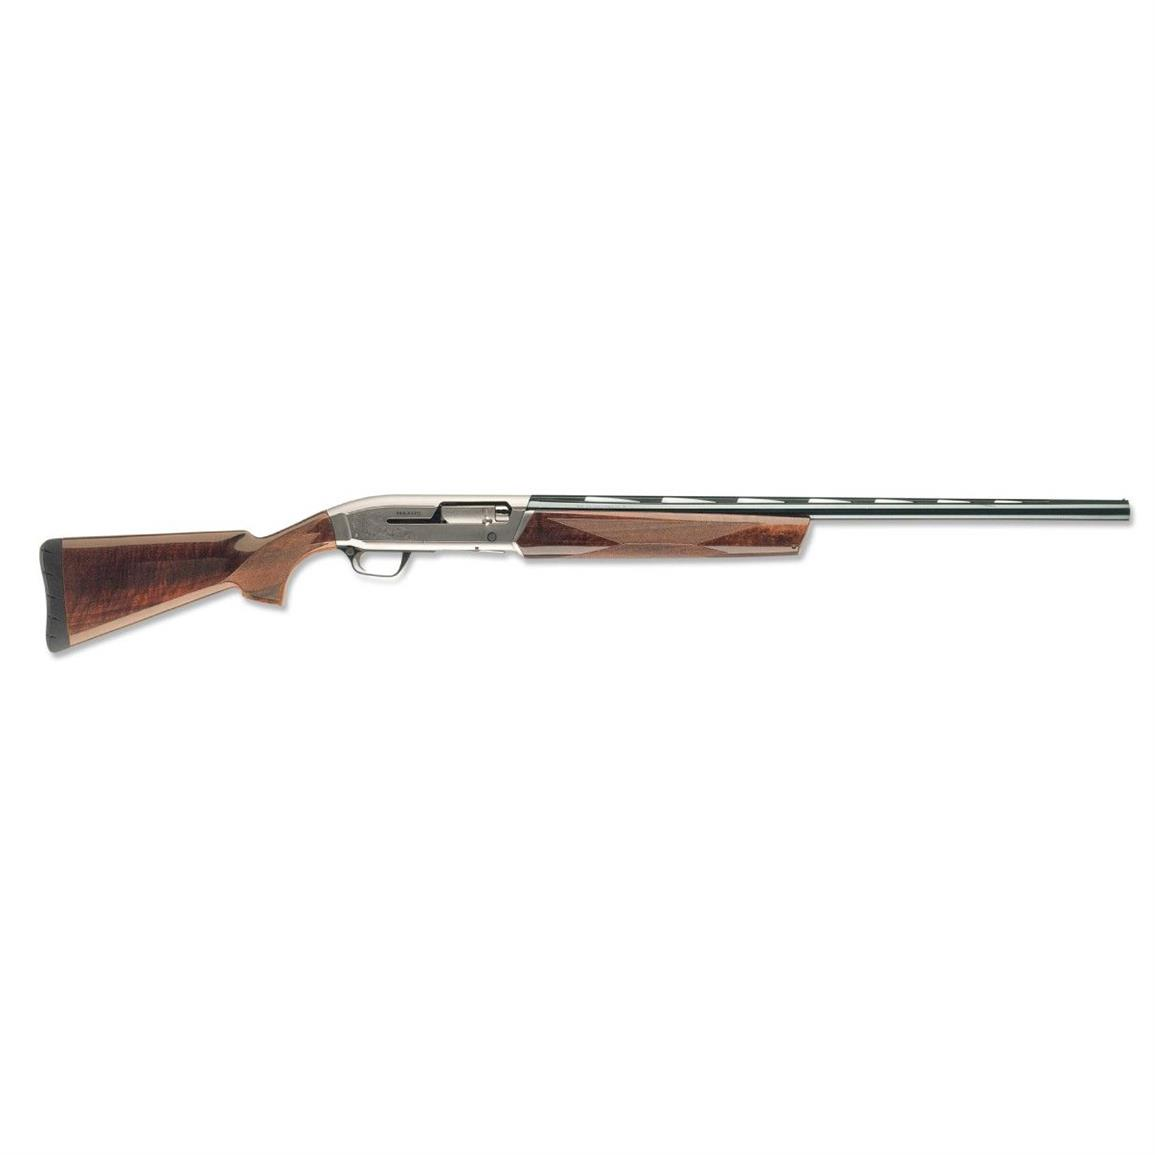 "Browning Maxus Hunter, Semi-Automatic, 12 Gauge, 28"" Barrel, 4+1 Round"